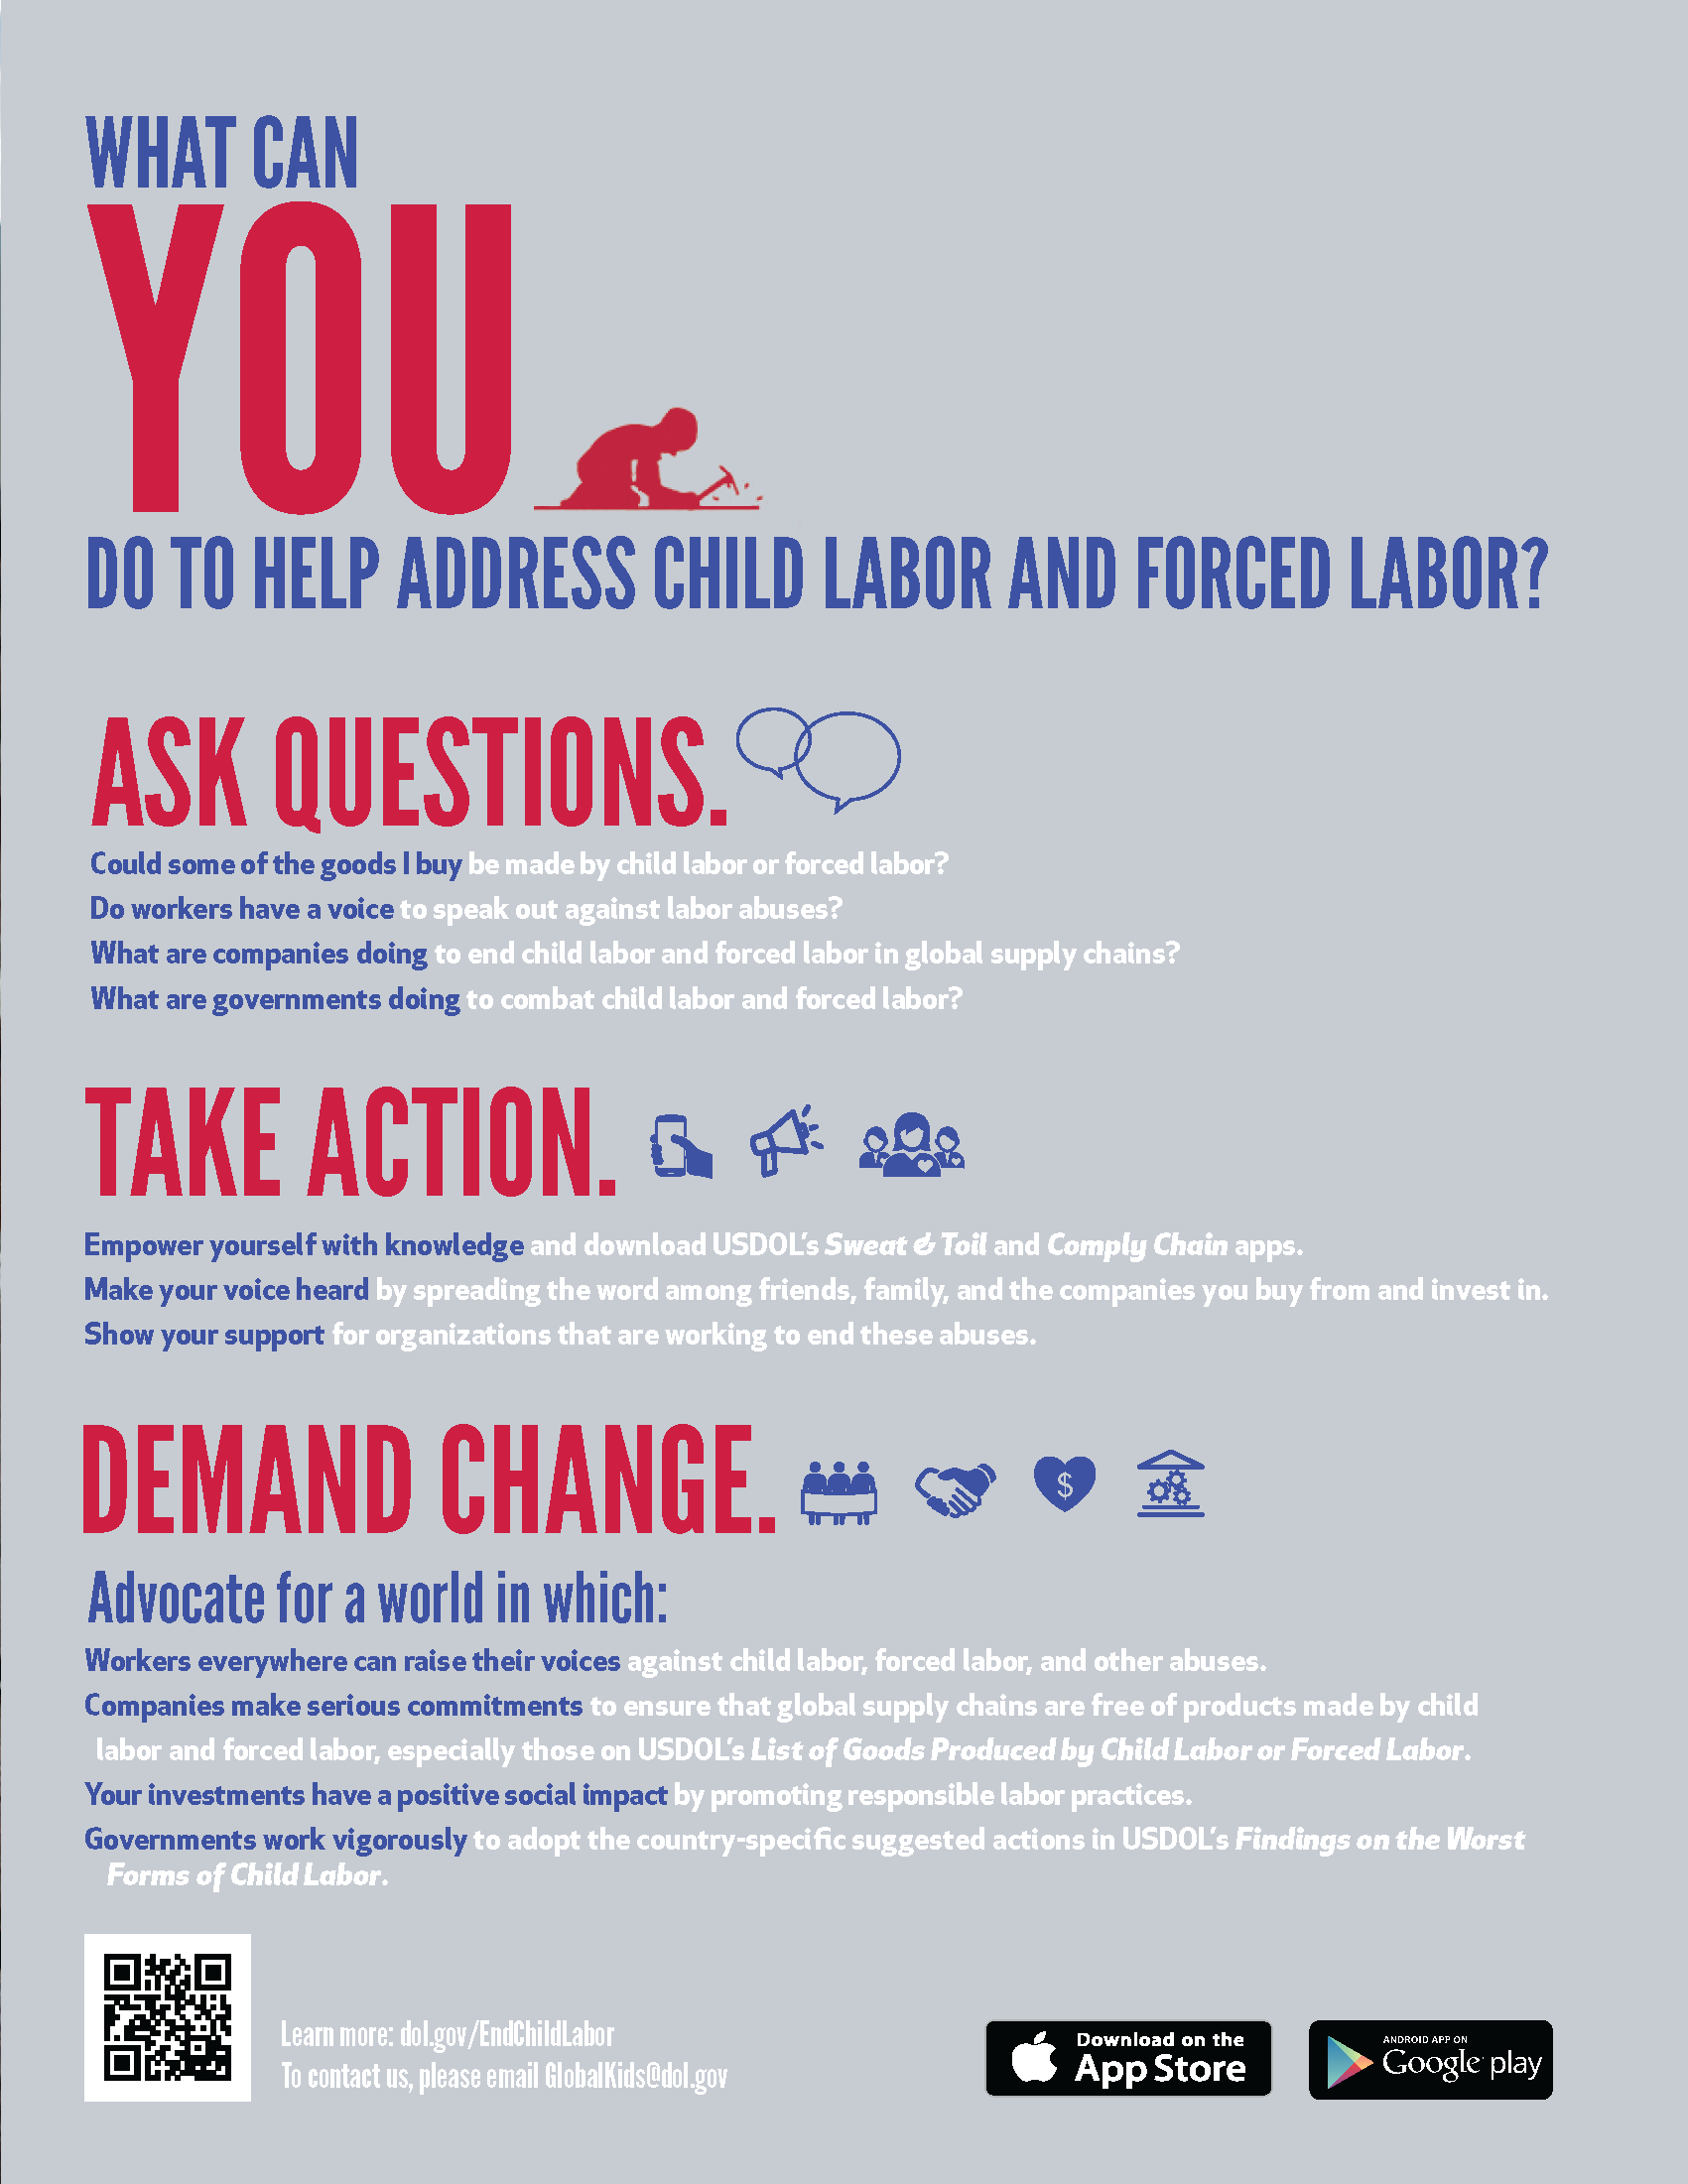 What Can You Do to Help Address Child Labor and Forced Labor?